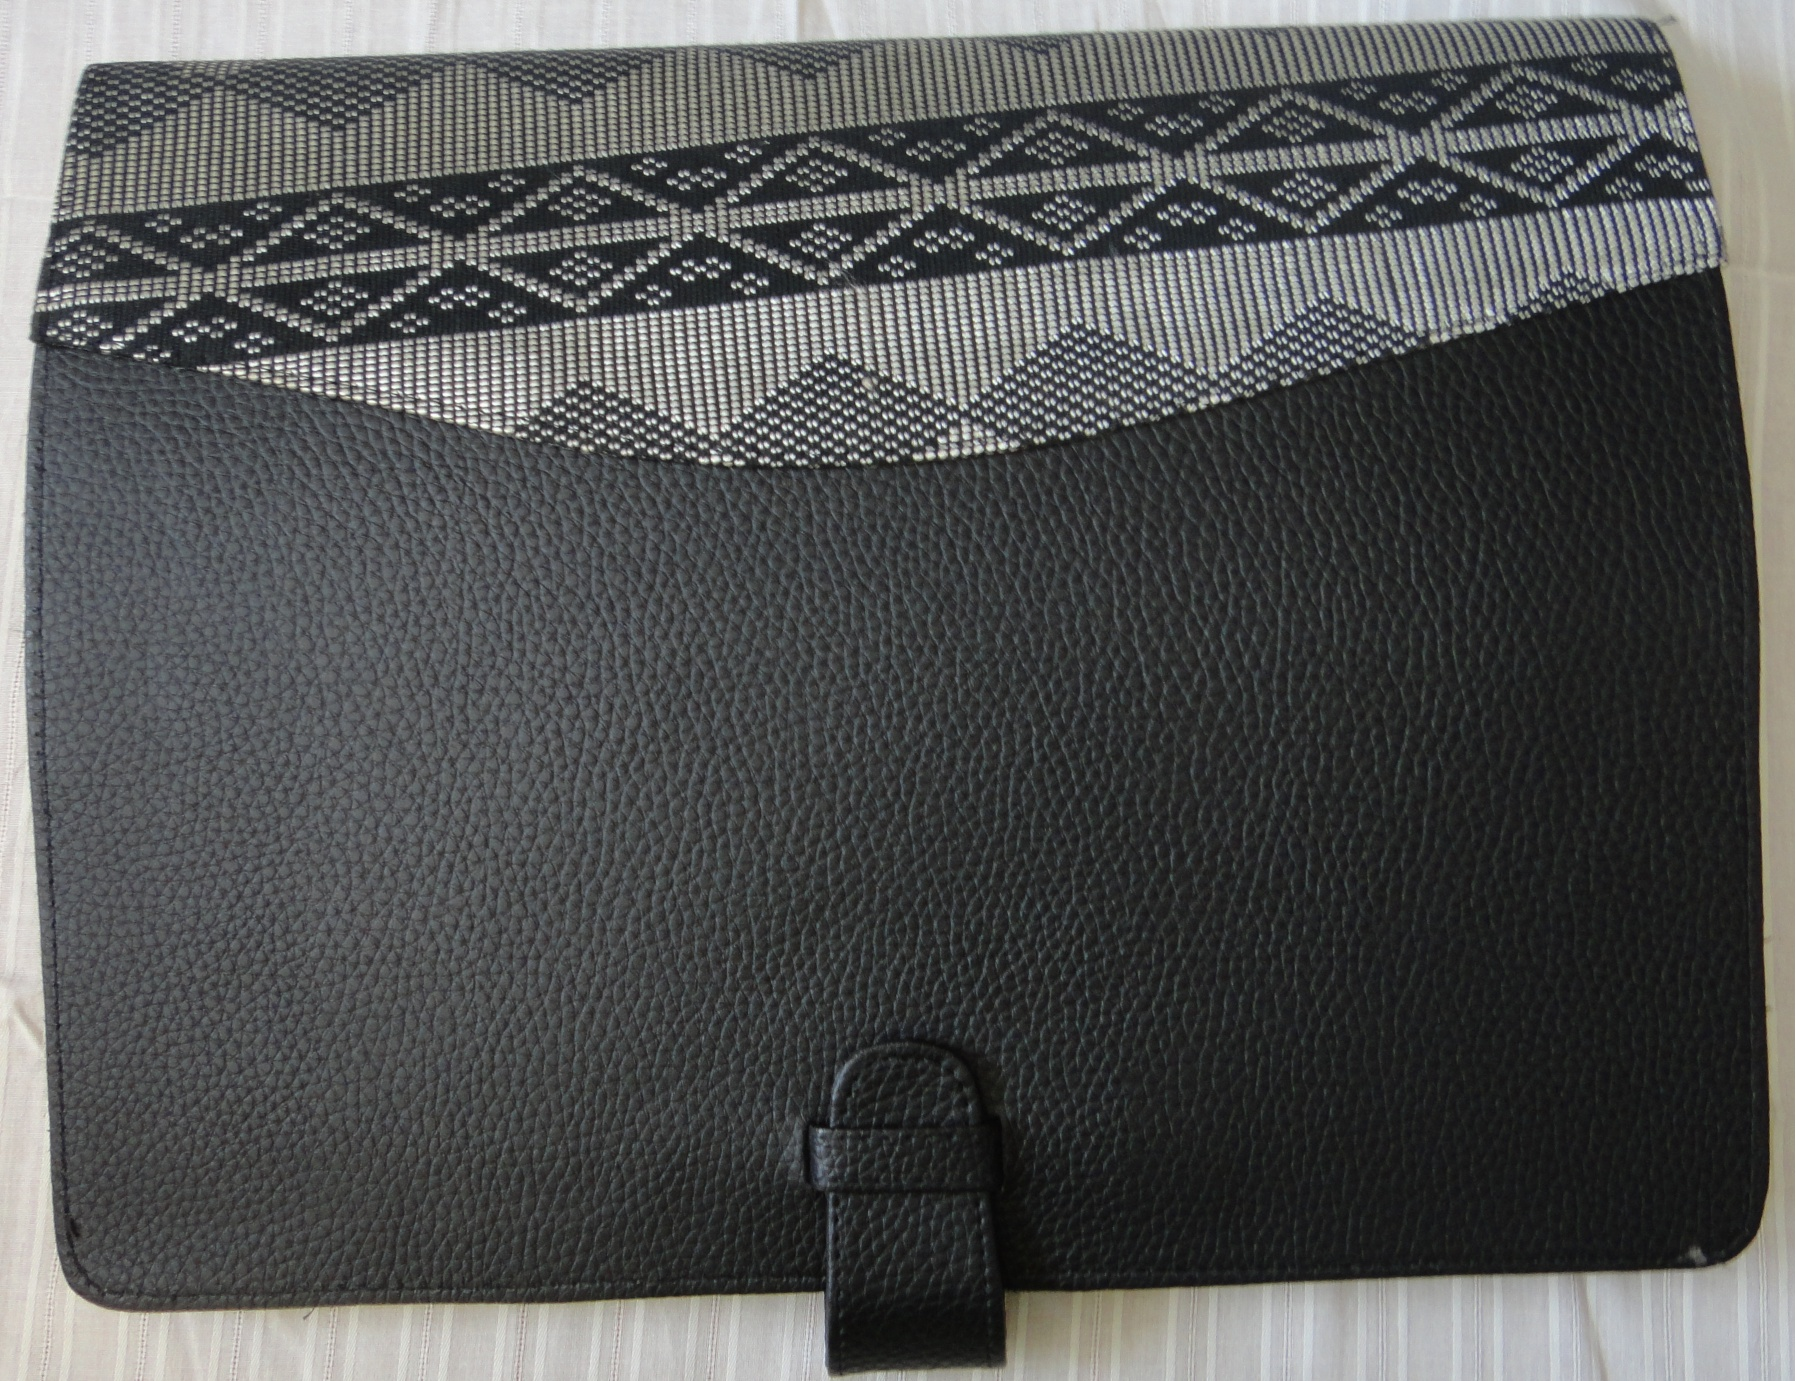 Woven Loincloth Document Holder